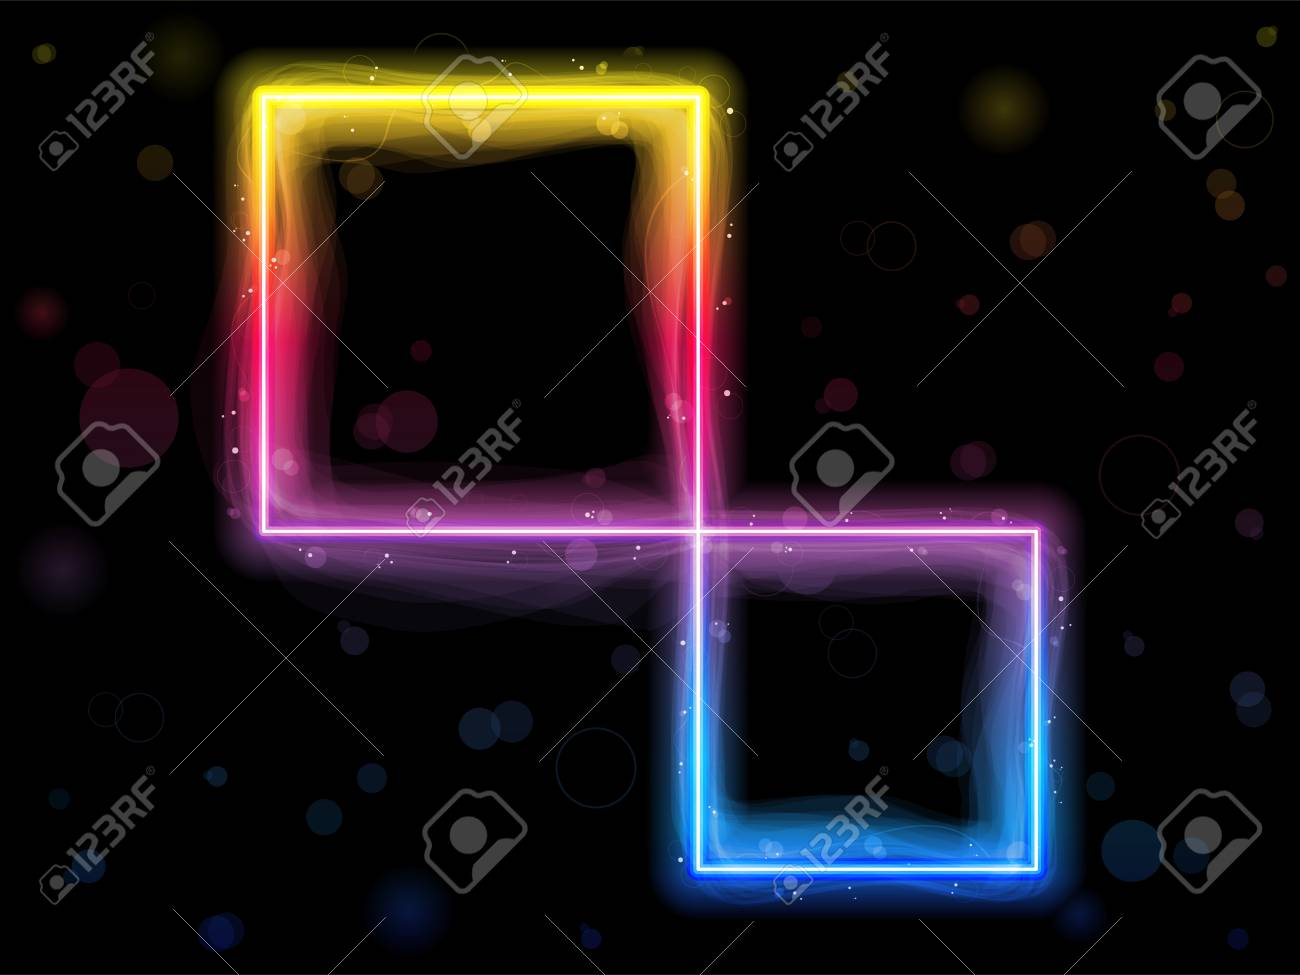 Rainbow Square Border with Sparkles and Swirls. Stock Vector - 7881693